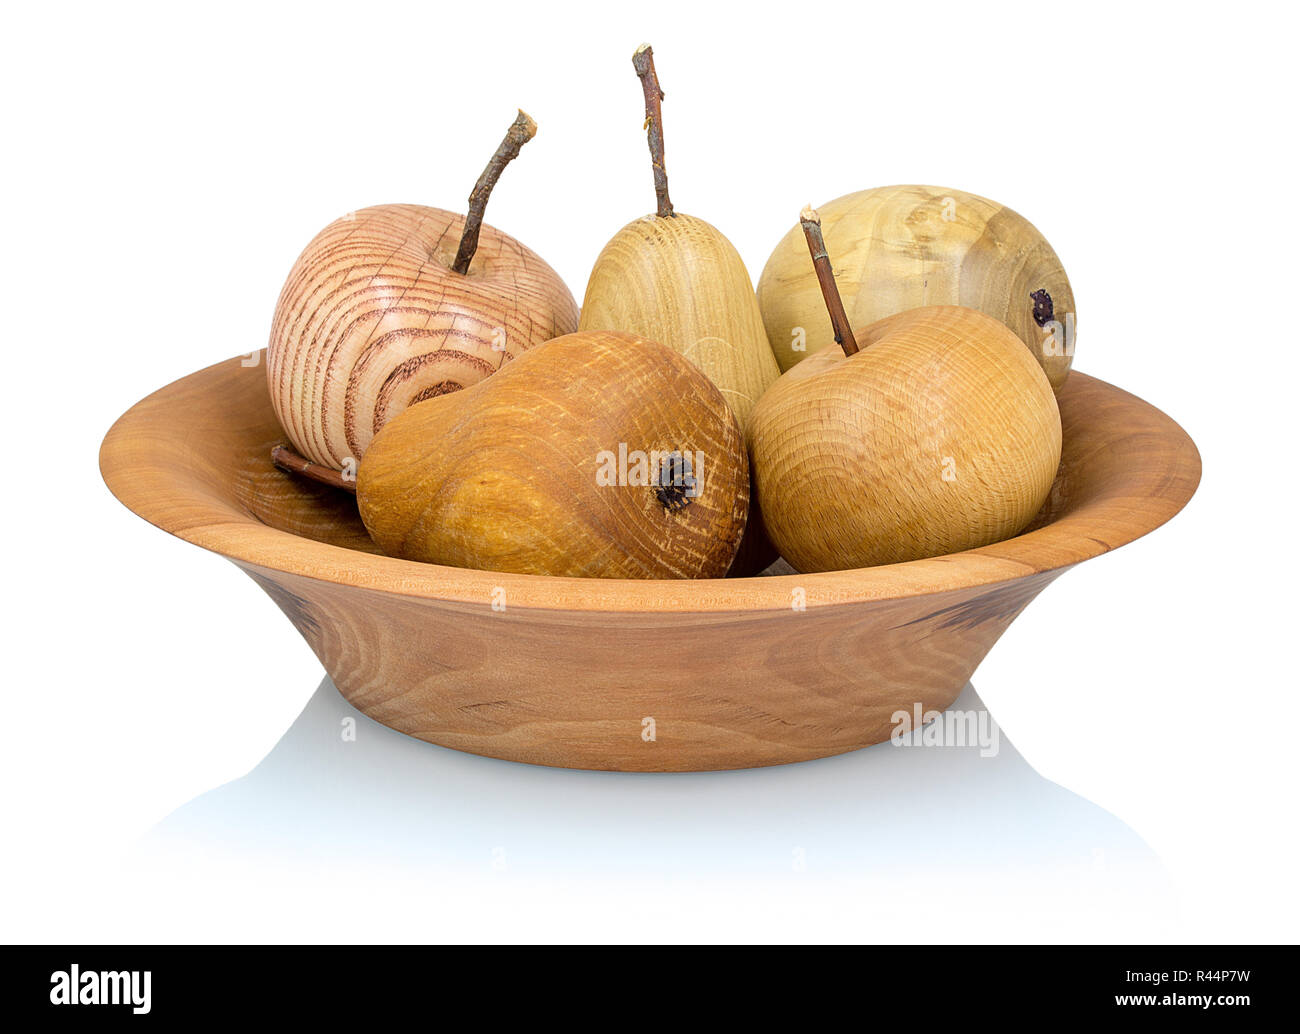 Wooden apples and pears in a fruit bowl made from a different types of wood isolated on white background with shadow reflection. Perfect arranged hand - Stock Image